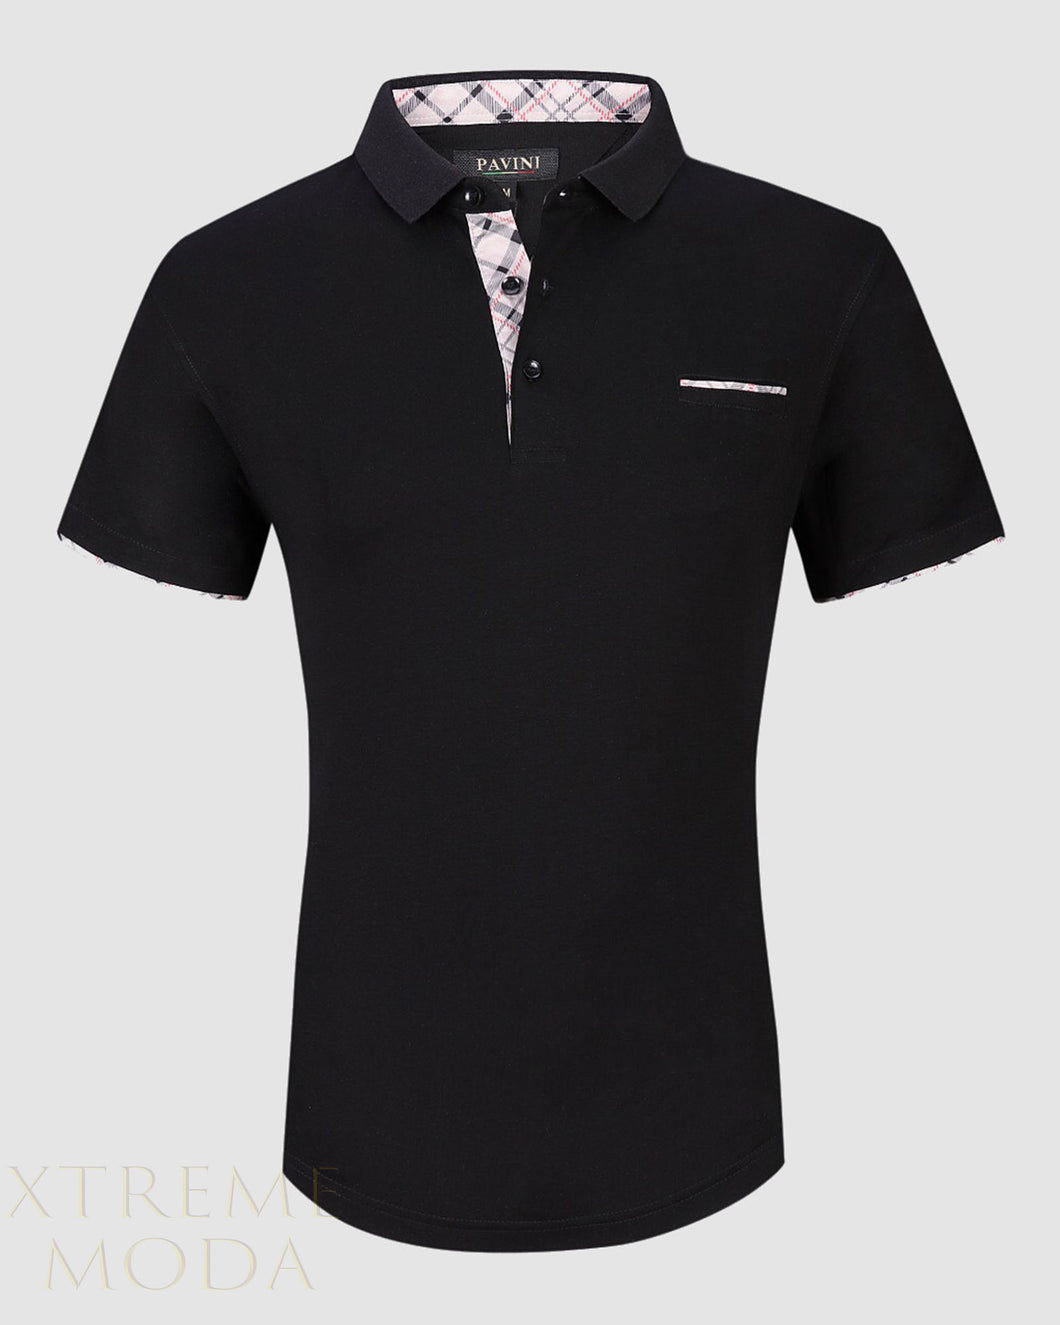 SLIM fit Pavini polo shirt  PT-944 black